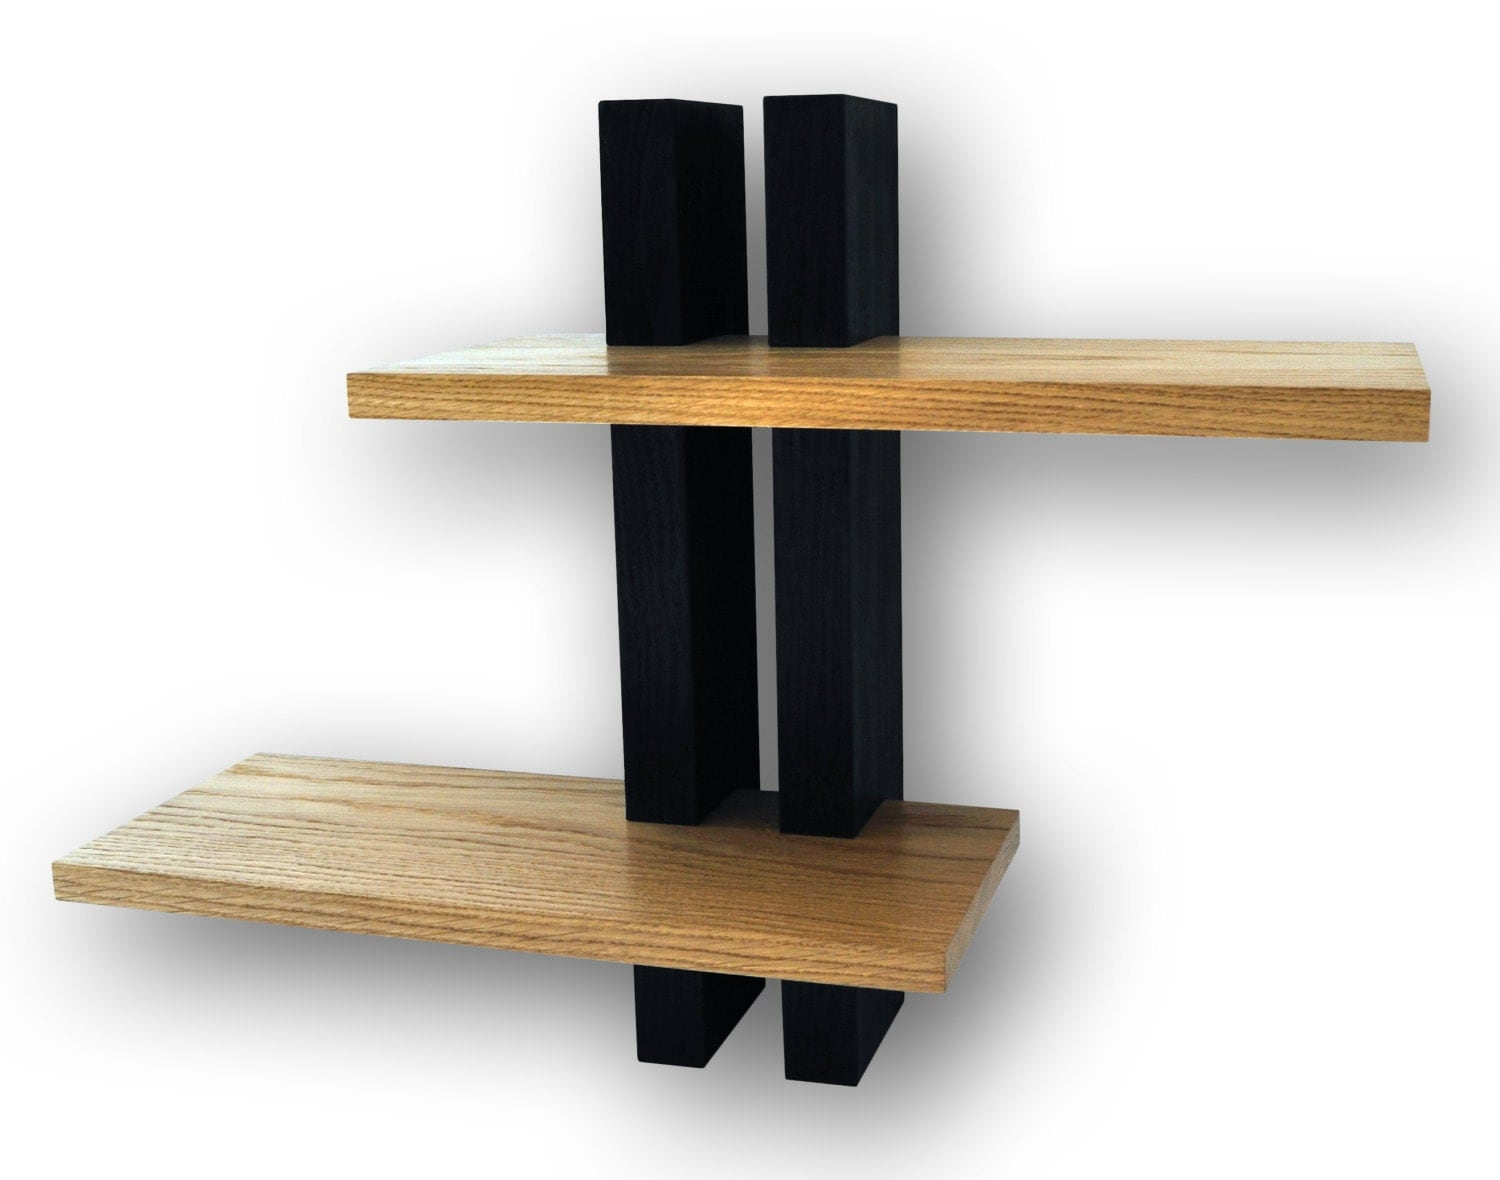 small oak shelves wall shelves handmade in the uk two shelf. Black Bedroom Furniture Sets. Home Design Ideas